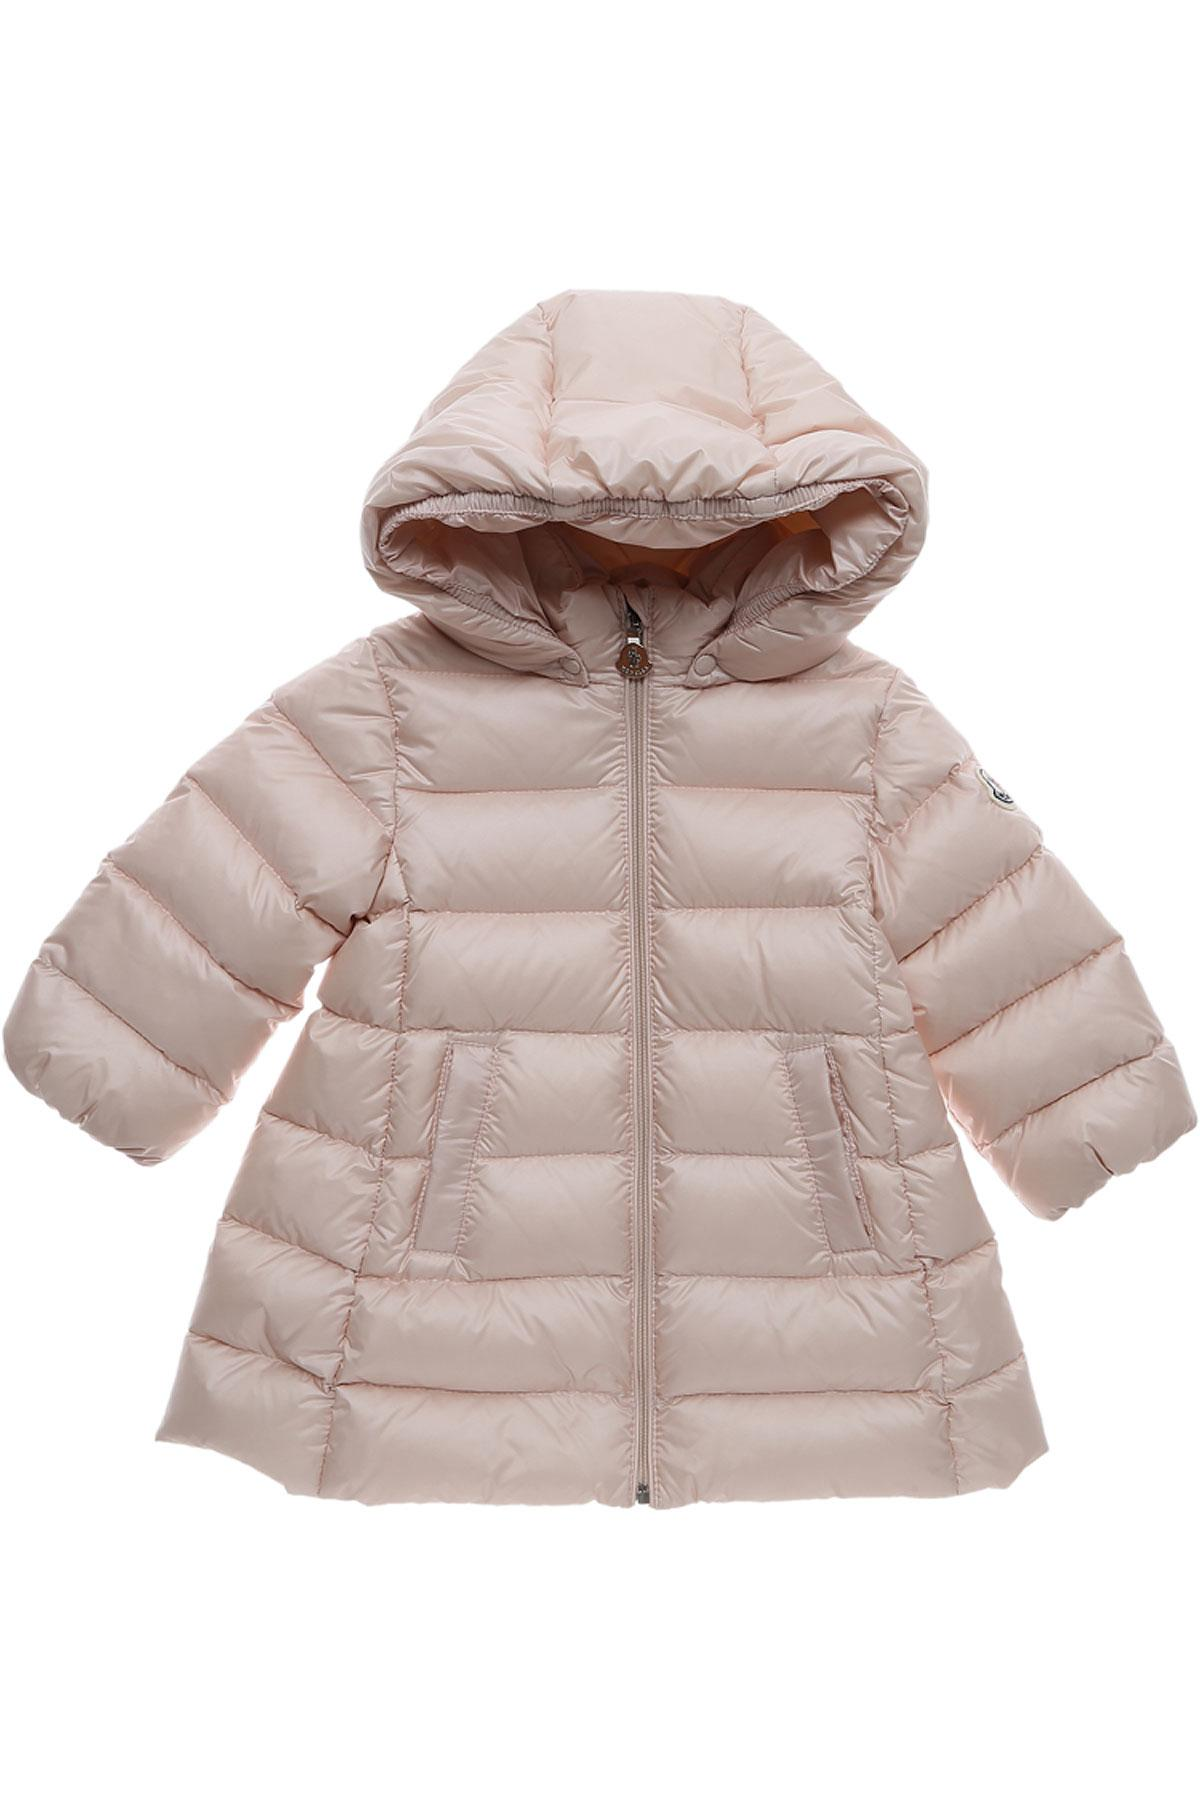 d0d77a958 Lyst - Moncler Baby Down Jacket For Girls On Sale in Pink